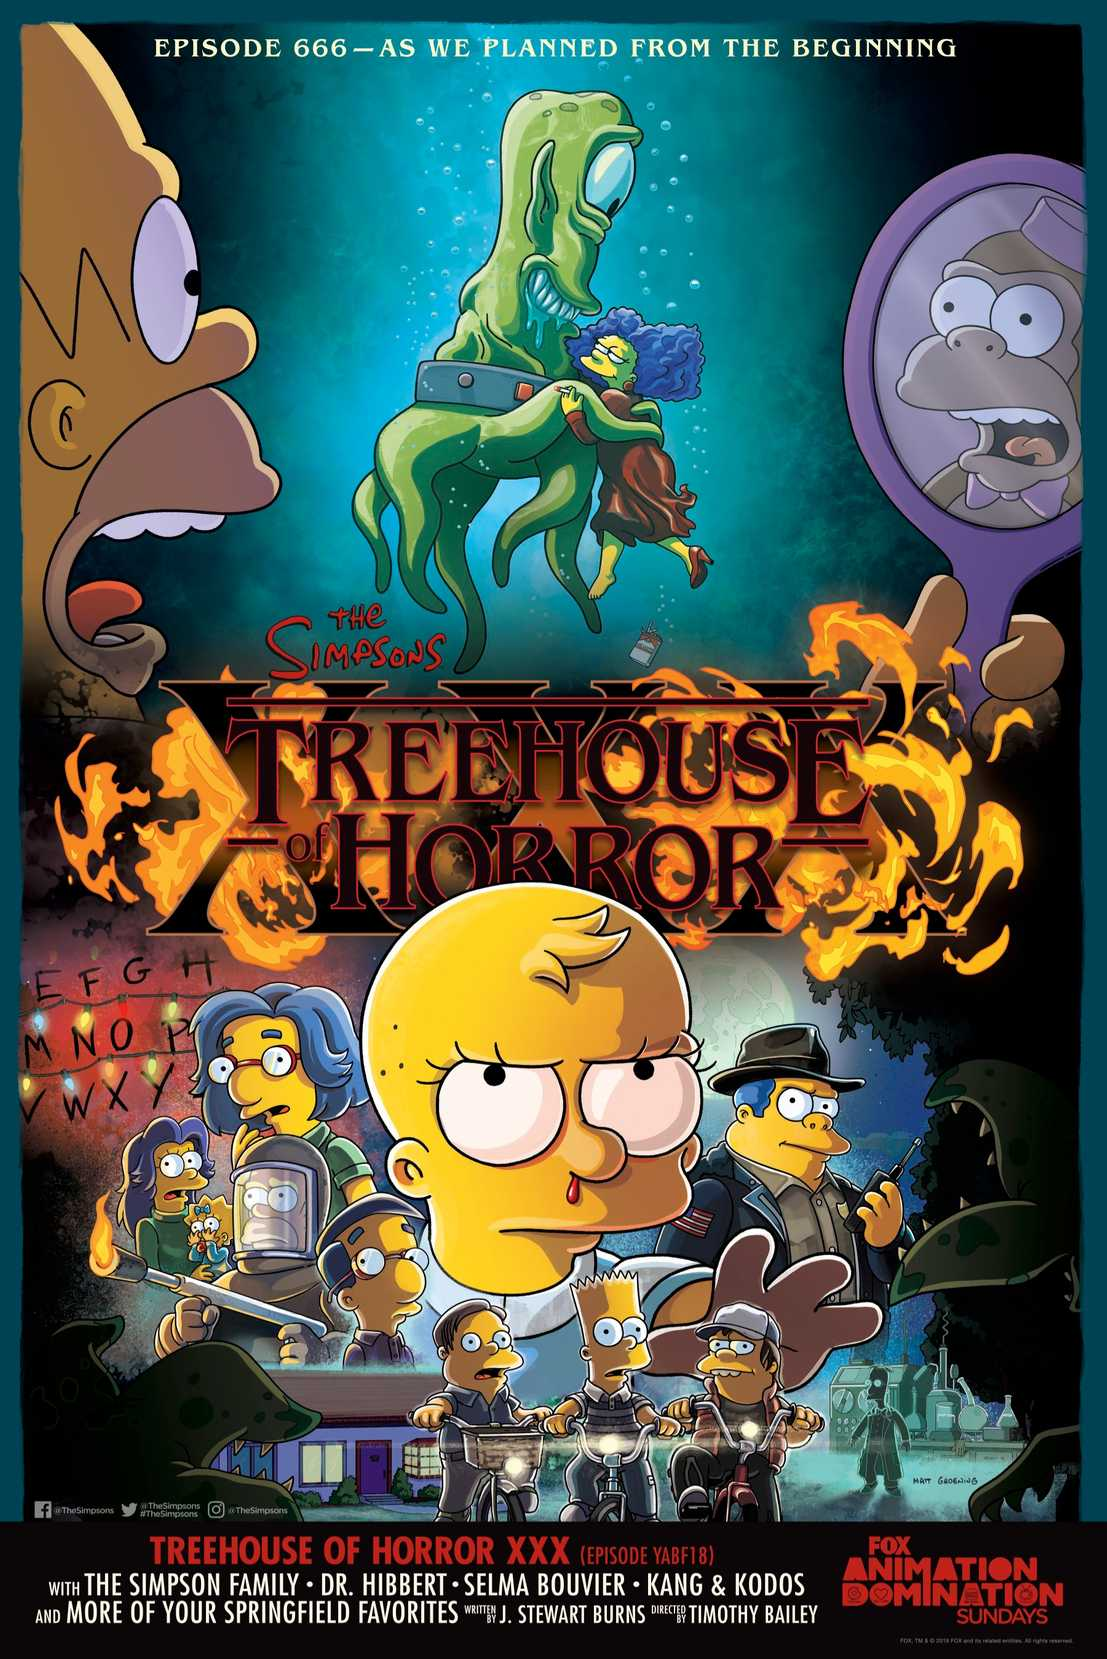 The Simpsons Will Spoof Stranger Things In 'Treehouse Of